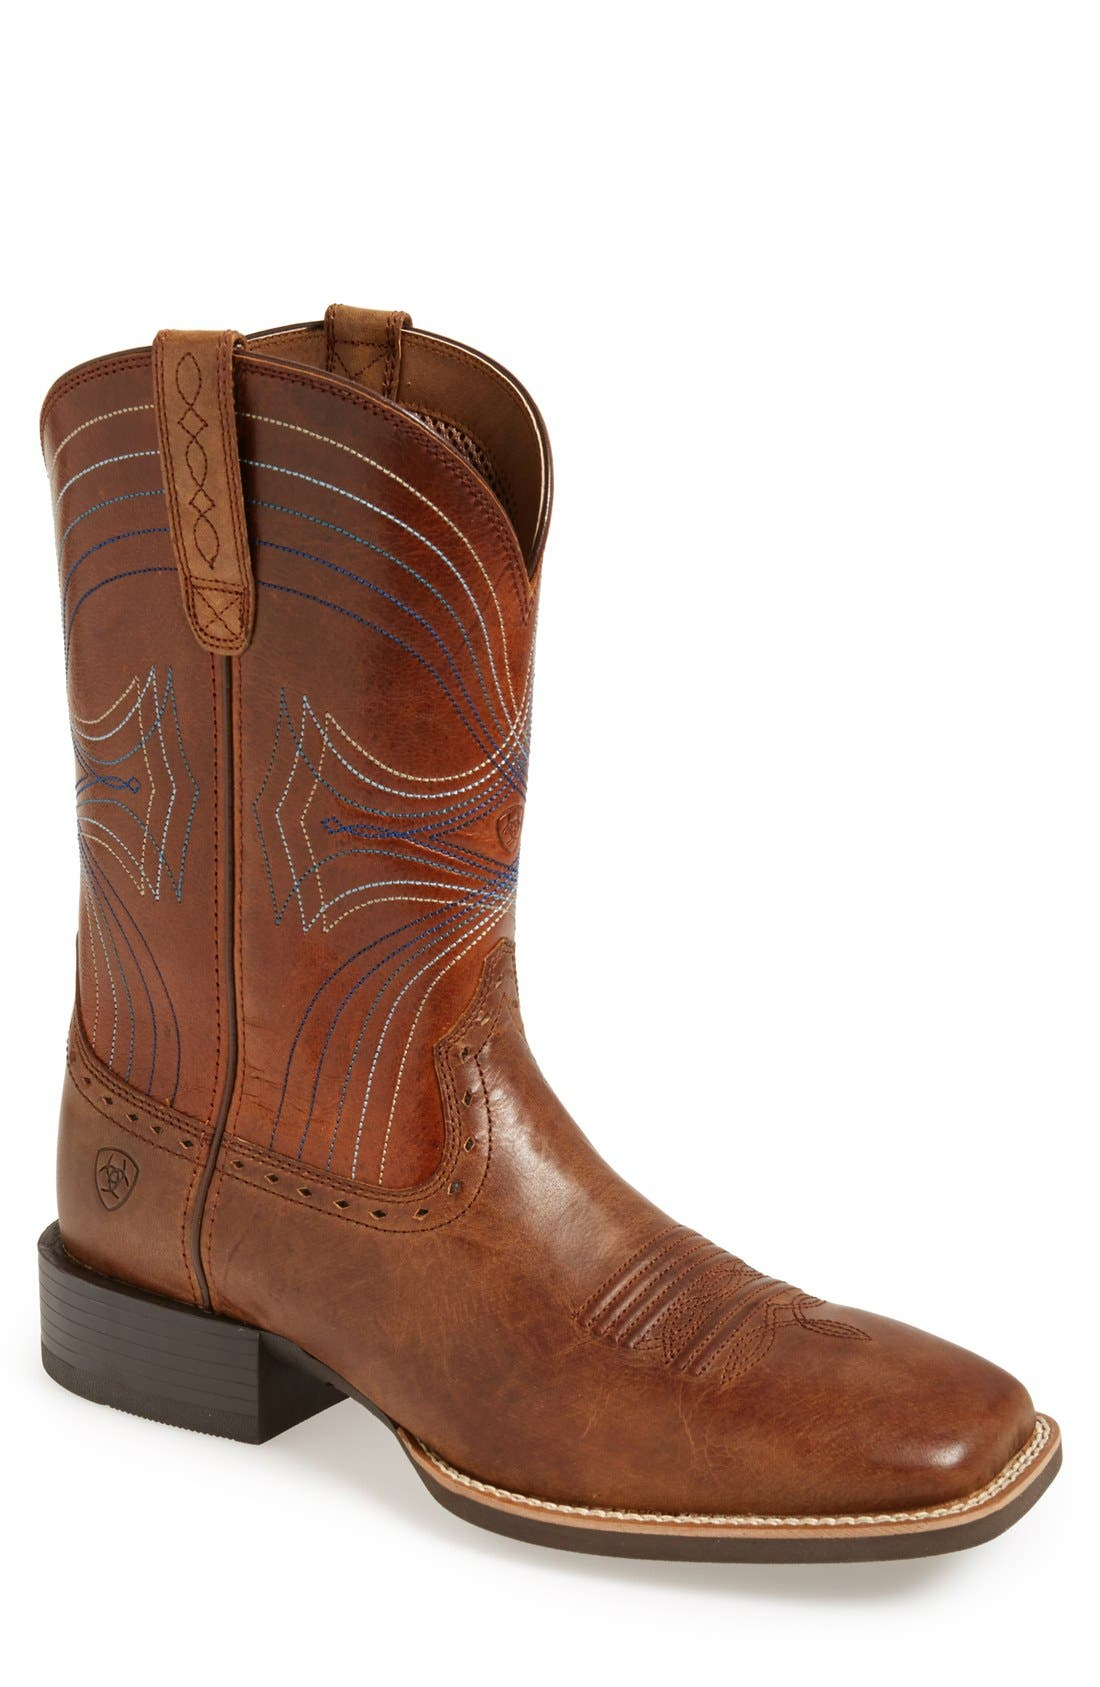 Main Image - Ariat 'Sport' Leather Cowboy Boot (Men)